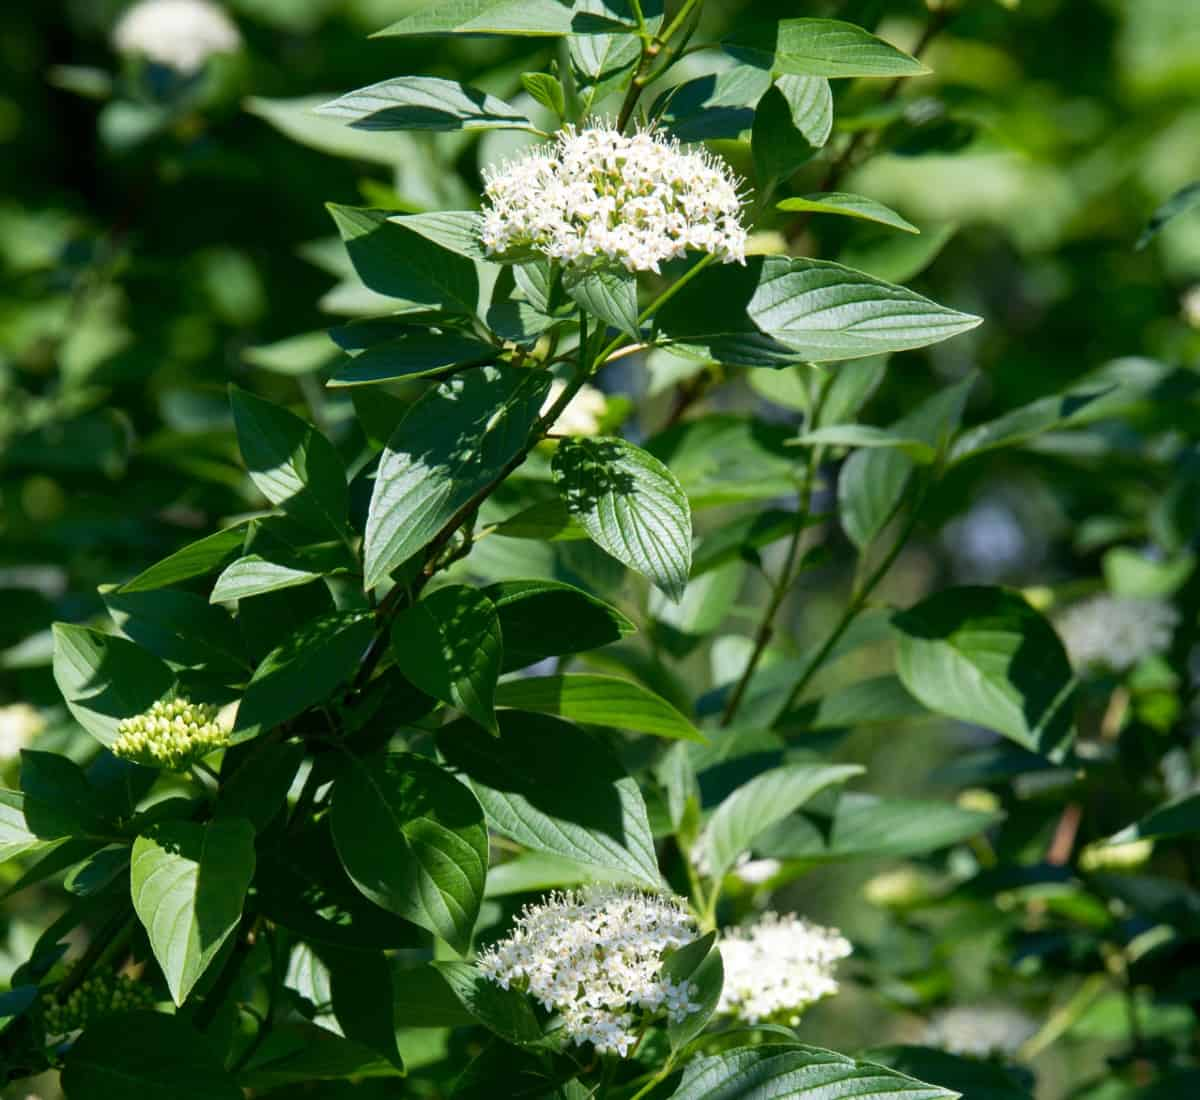 Enjoy the flowers, berries, foliage, and branches of the red twig dogwood in each season.